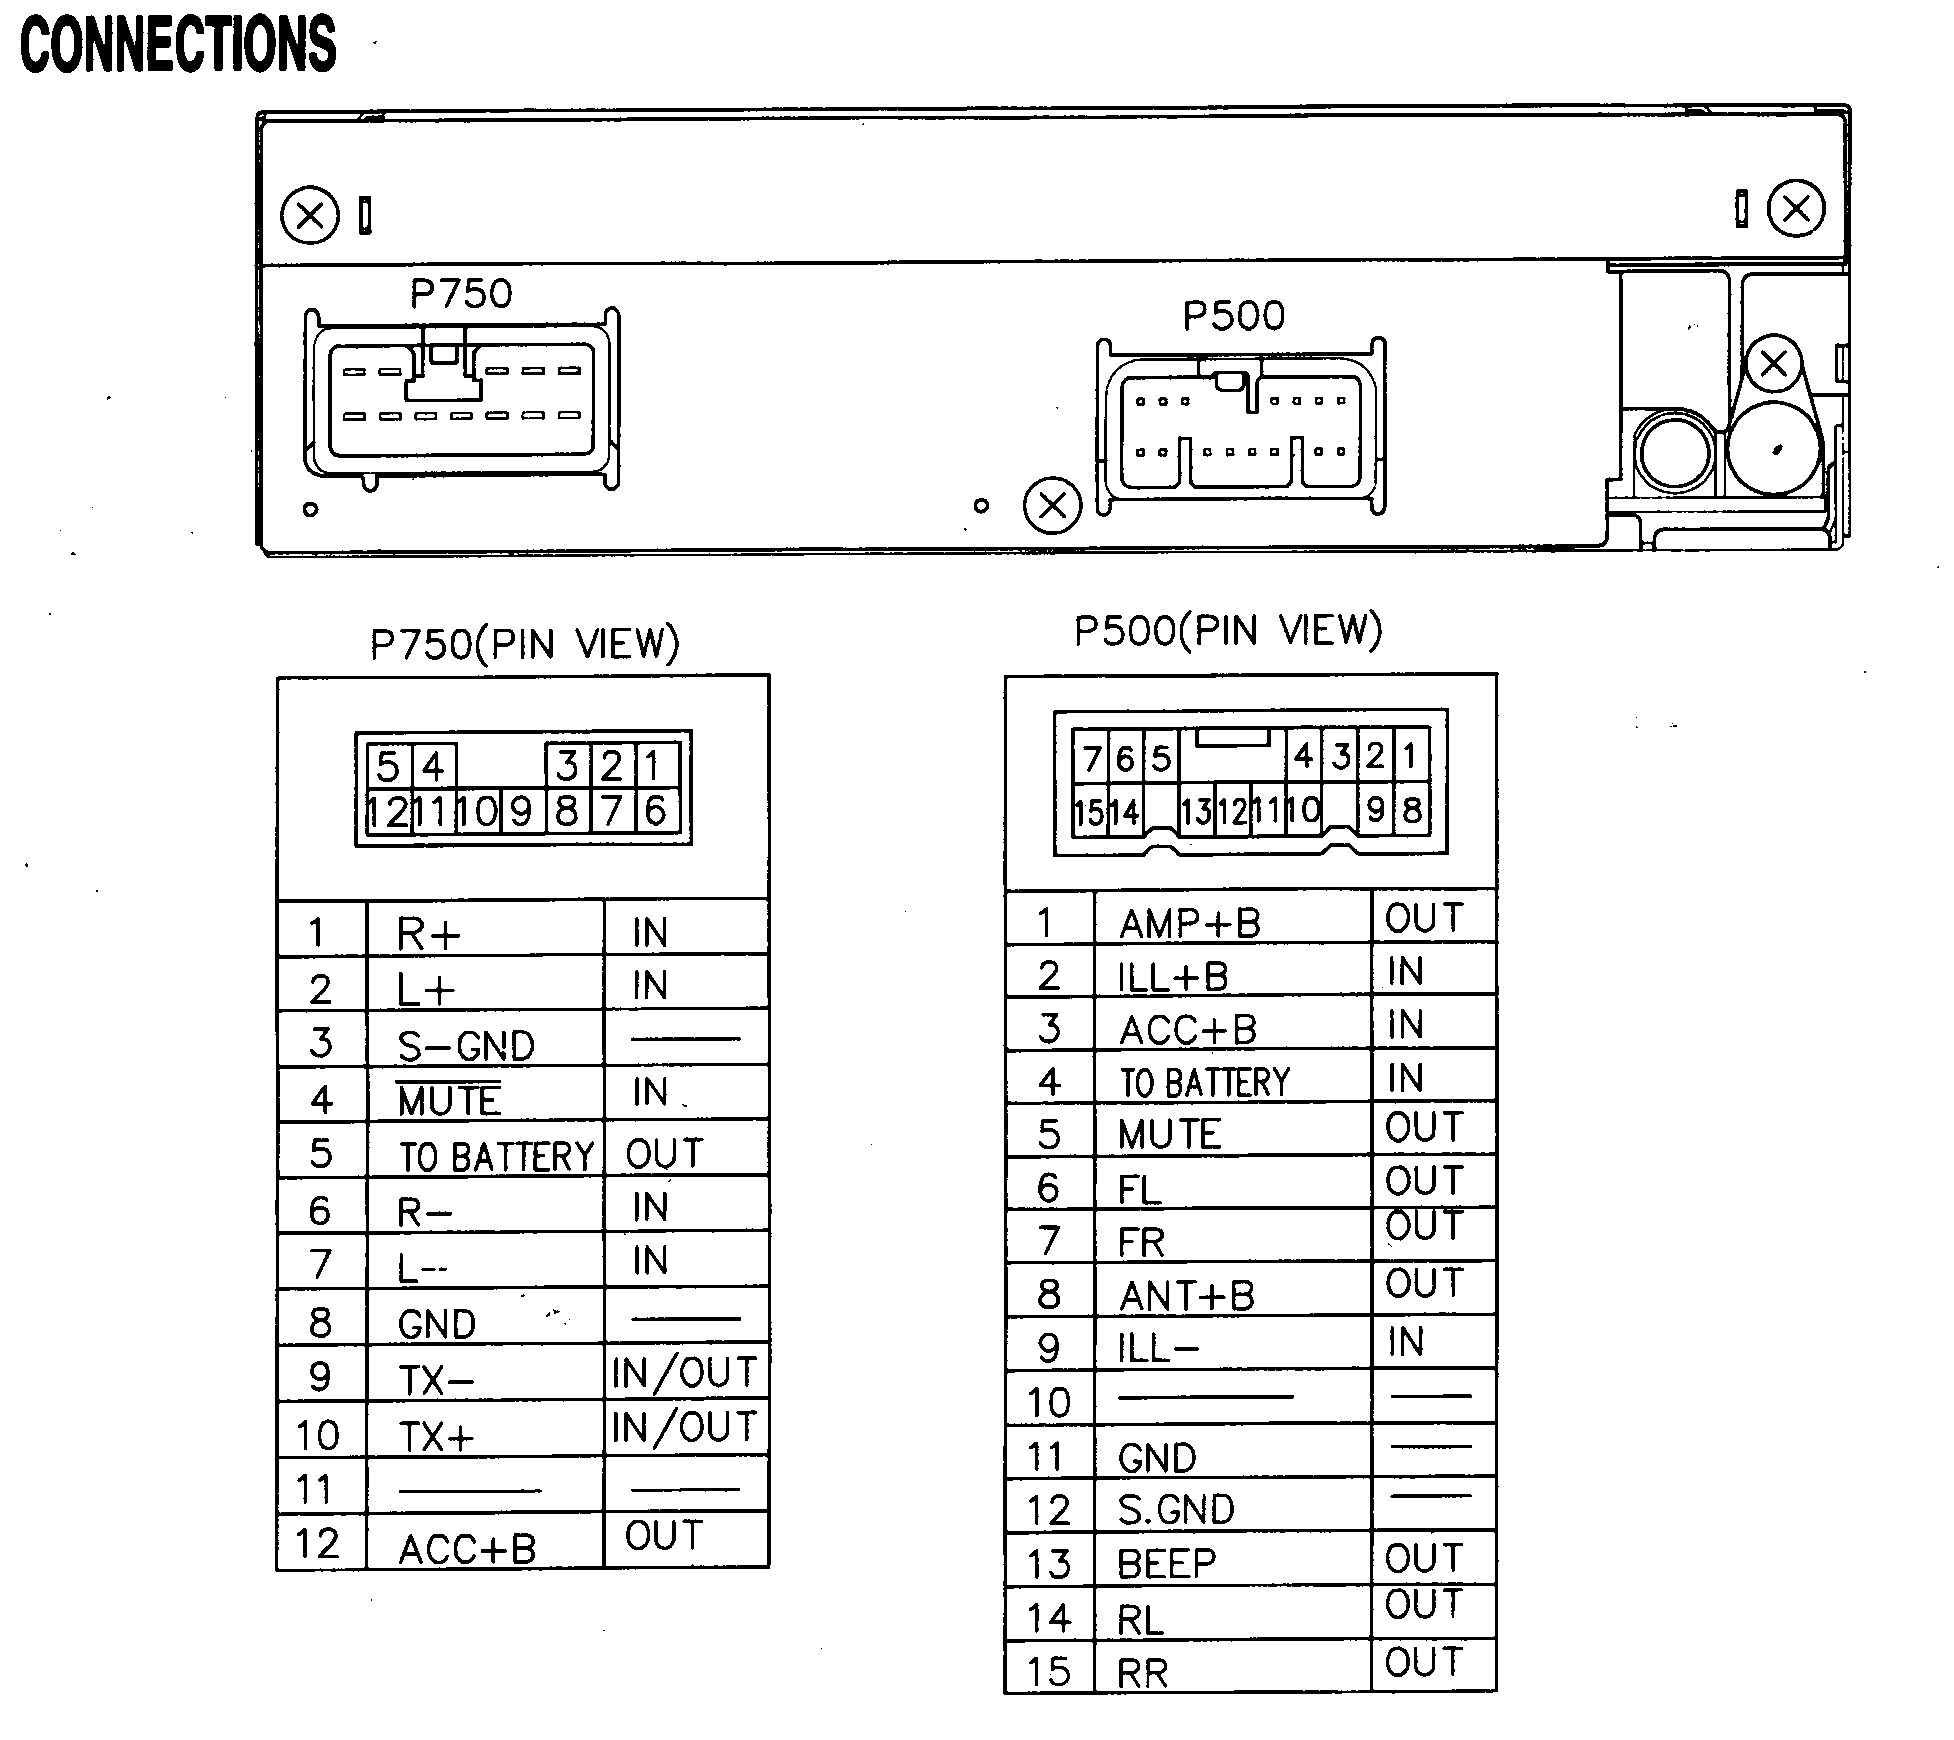 Car Wiring Harness Diagram Connector 2000 Connectors Wiring Diagram Get Free Image About Wiring Of Car Wiring Harness Diagram